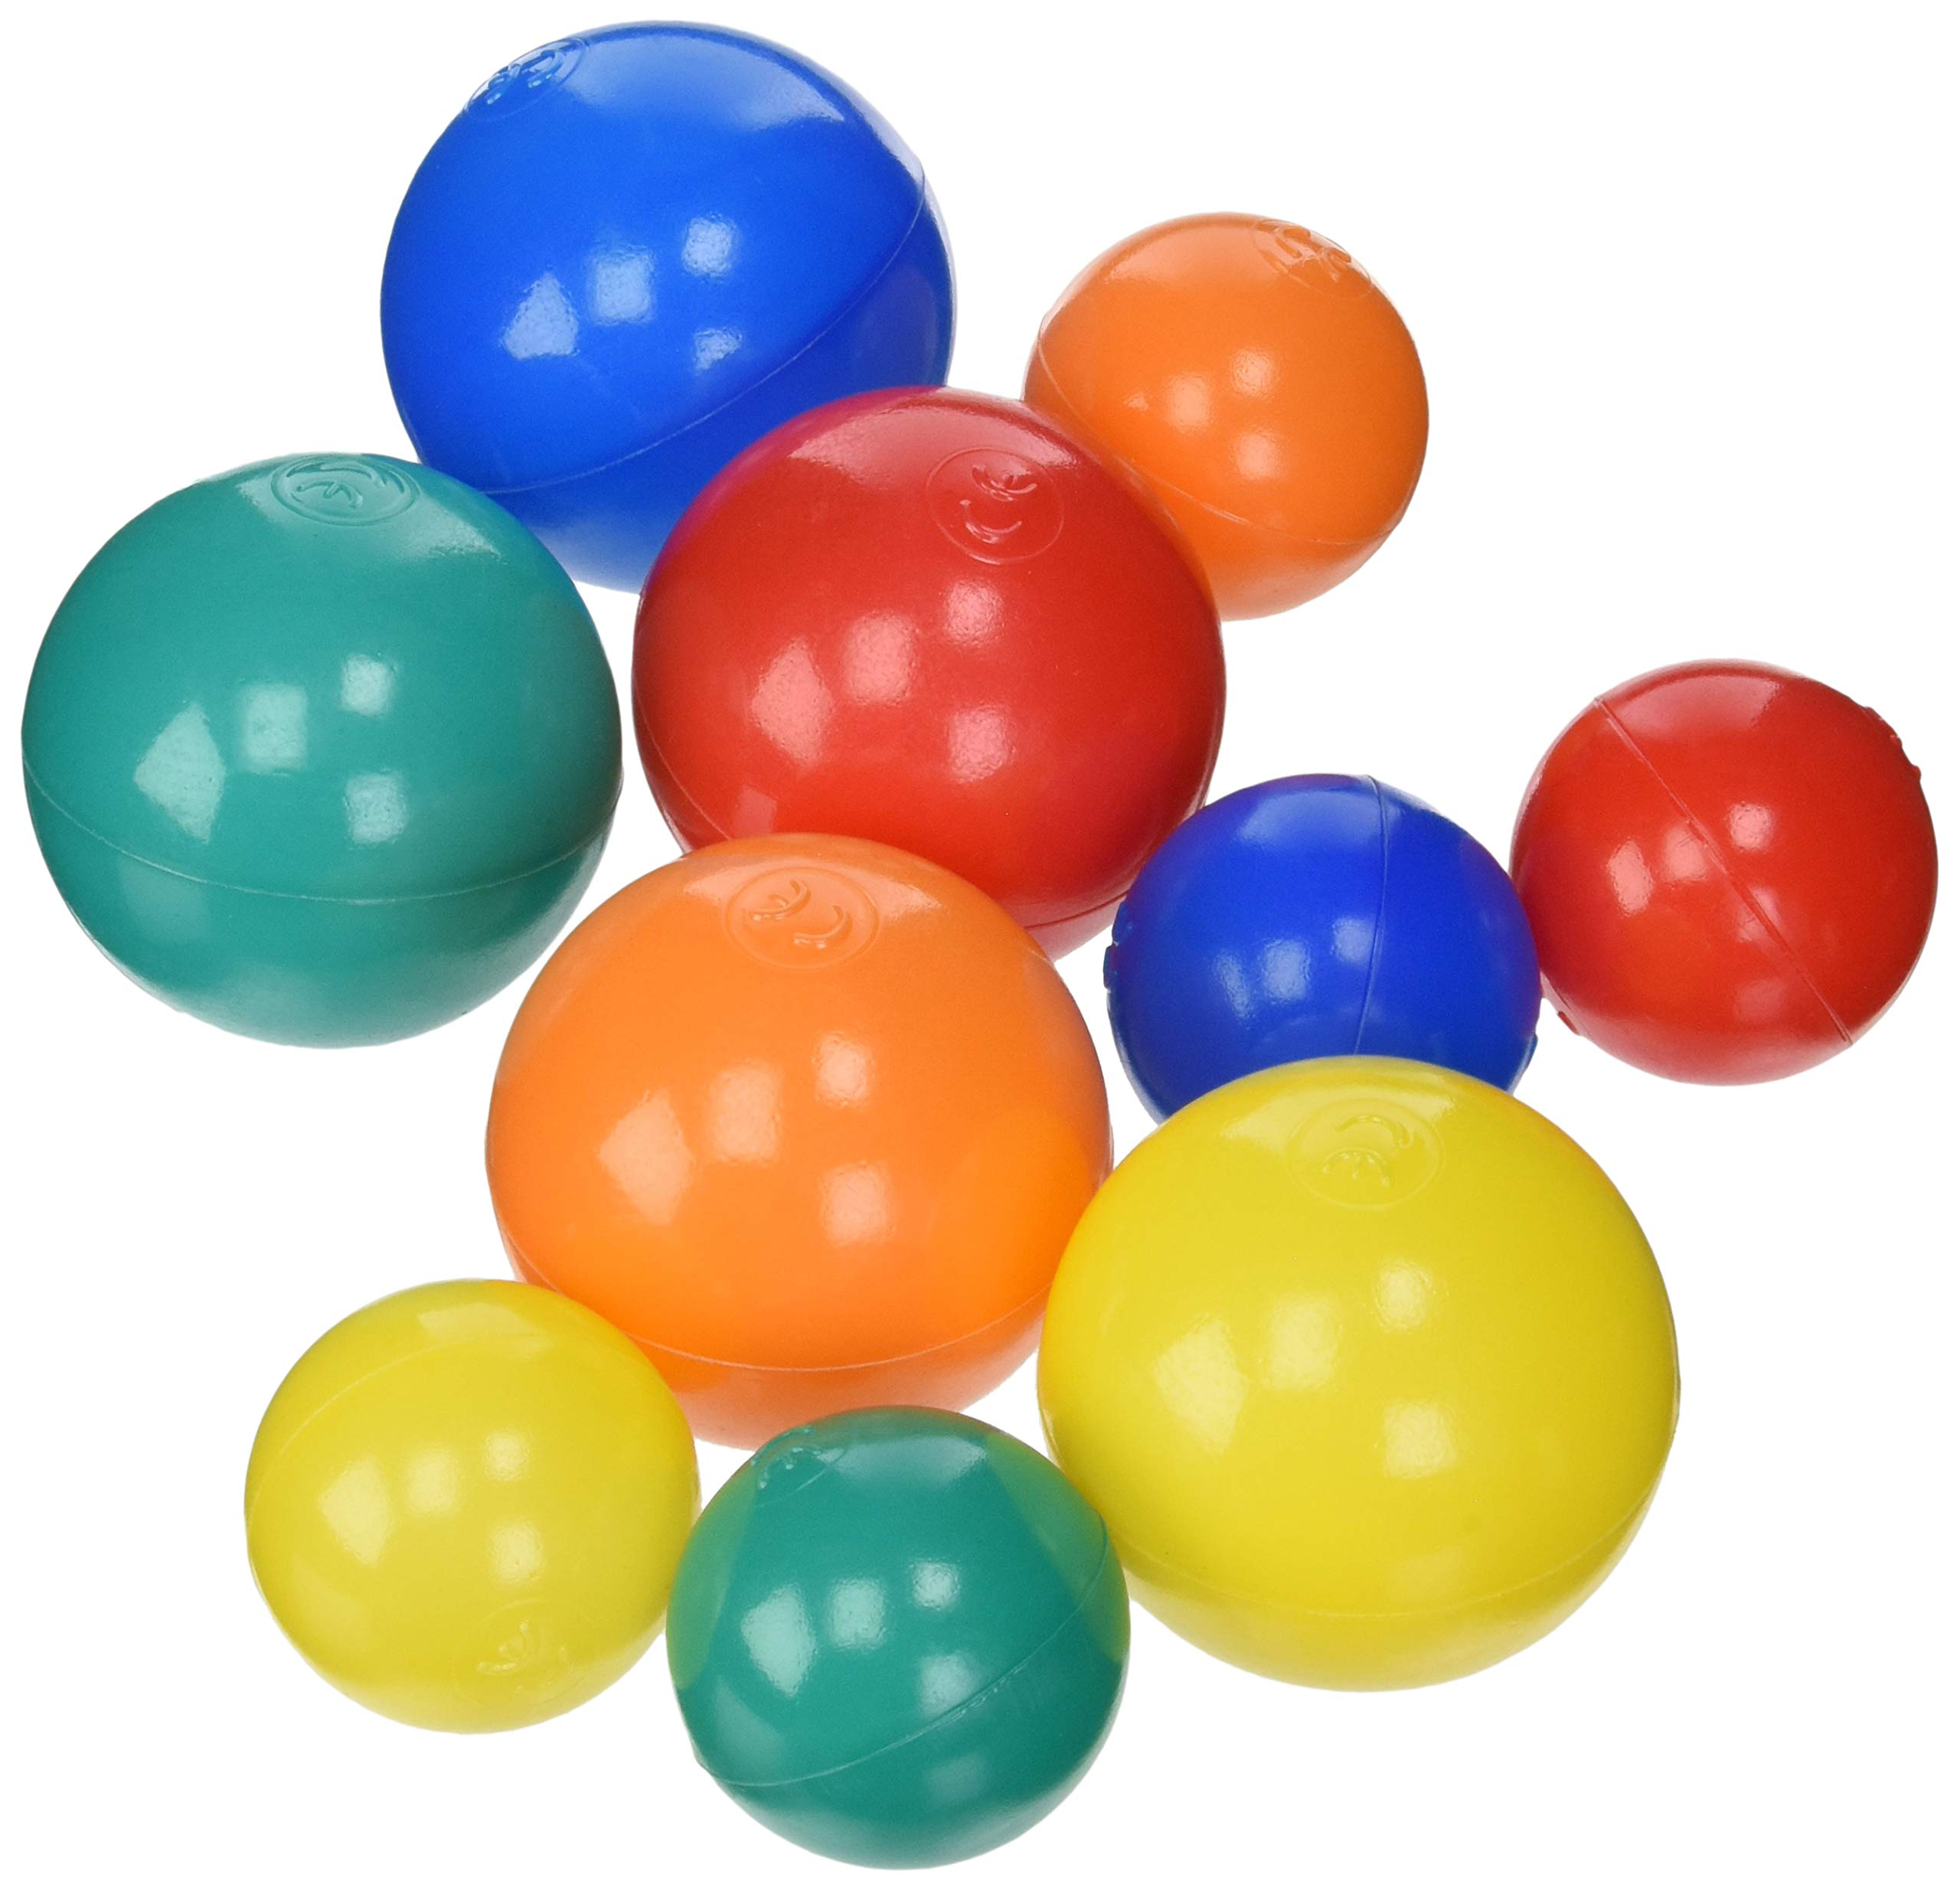 Sammons Preston Assorted Pool Balls, Set of 300, 2'' and 3'' Diameter Balls, Replacement Soft Plastic Pool Balls in Multiple Colors for Fun Children's Ball Pits, Crush Proof Plastic Ball, Various Colors by Sammons Preston (Image #1)